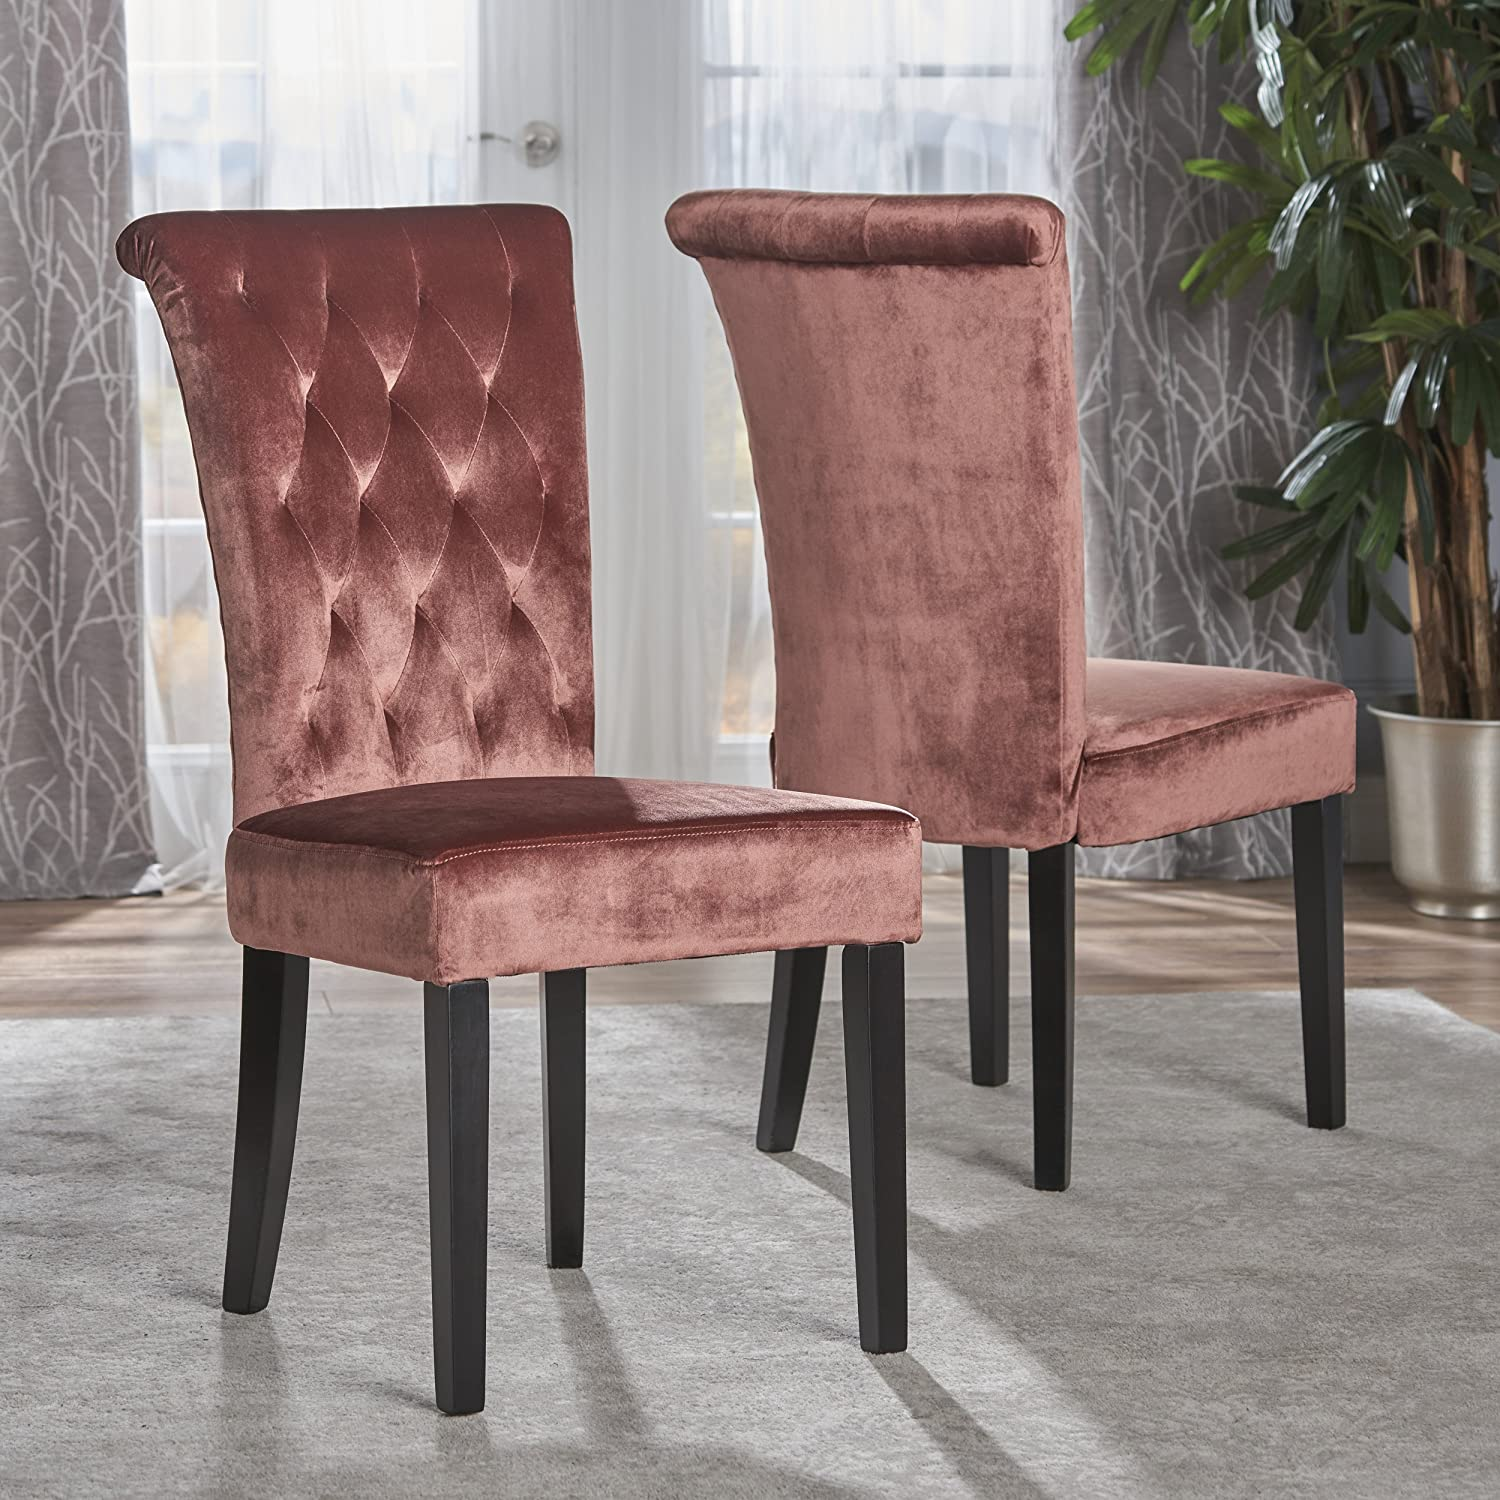 Christopher Knight Home 301780 Venetian Tufted New Velvet Dining Chair Blush Dark Brown